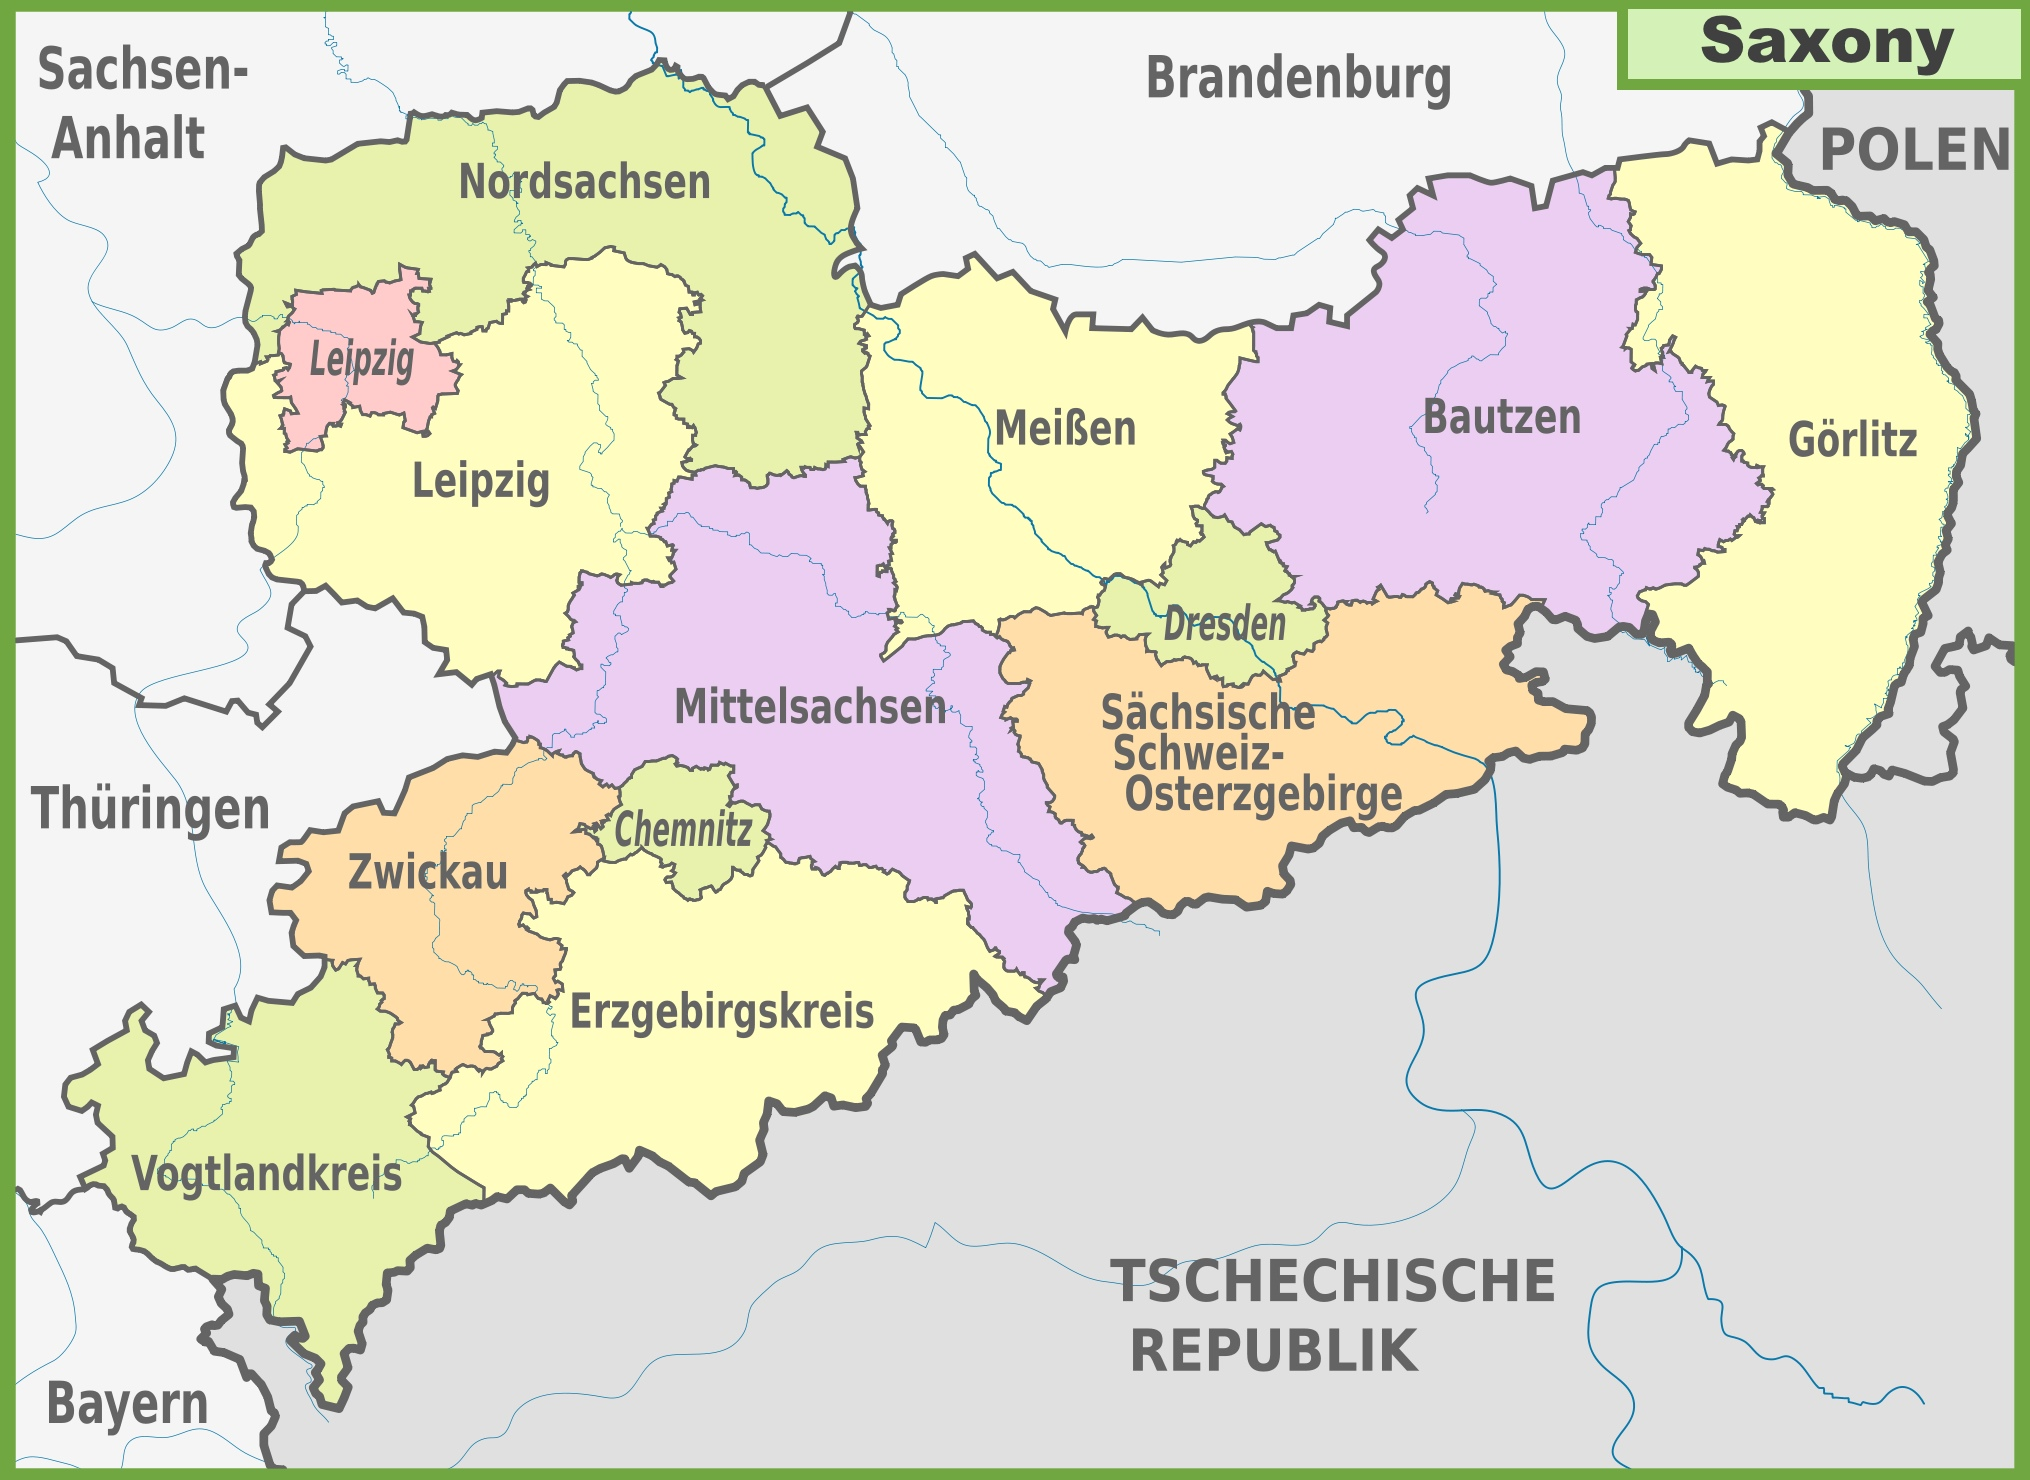 Administrative divisions map of Saxony